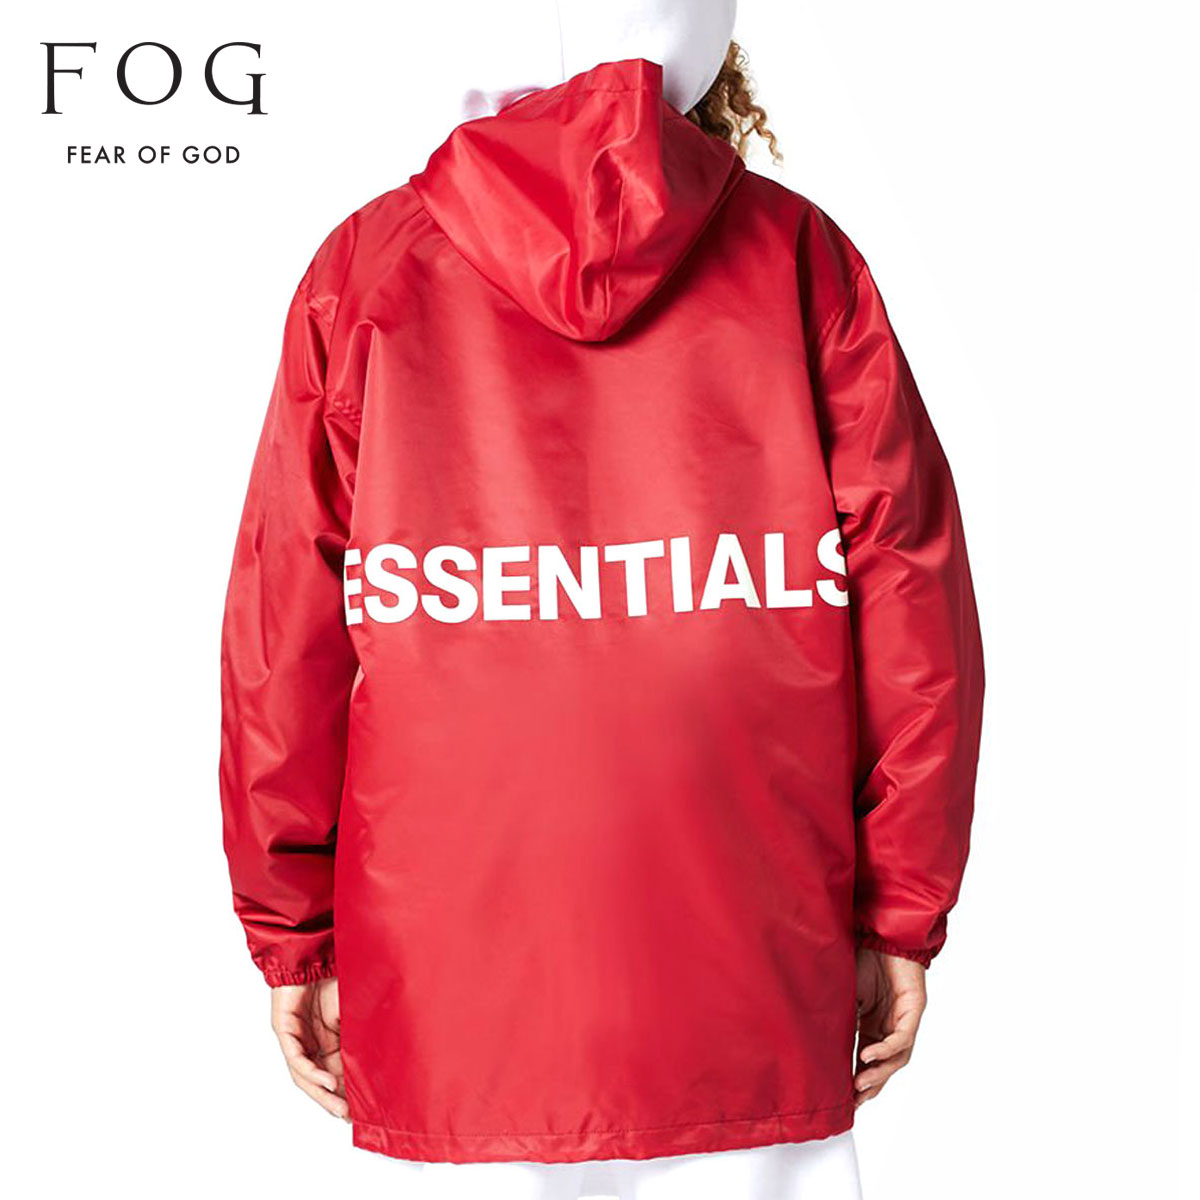 cc686ad68 Fear of god outer men's regular article FEAR OF GOD jacket coach jacket FOG  - FEAR OF GOD ESSENTIALS HOODED COACH JACKET RED